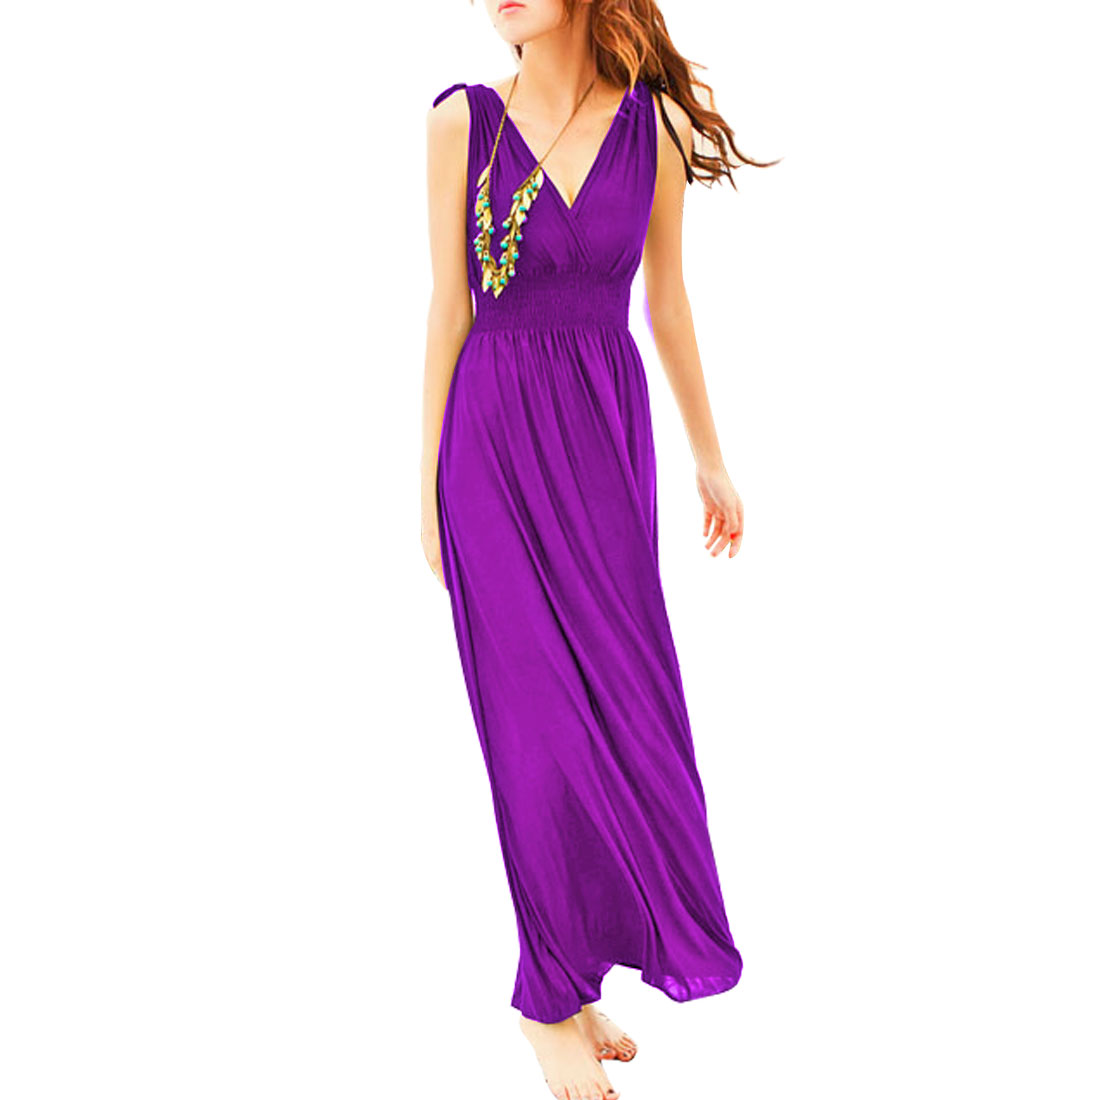 Ladies Purple Sleeveless Crossover V Neck Elastic Empire Maxi Dress XS